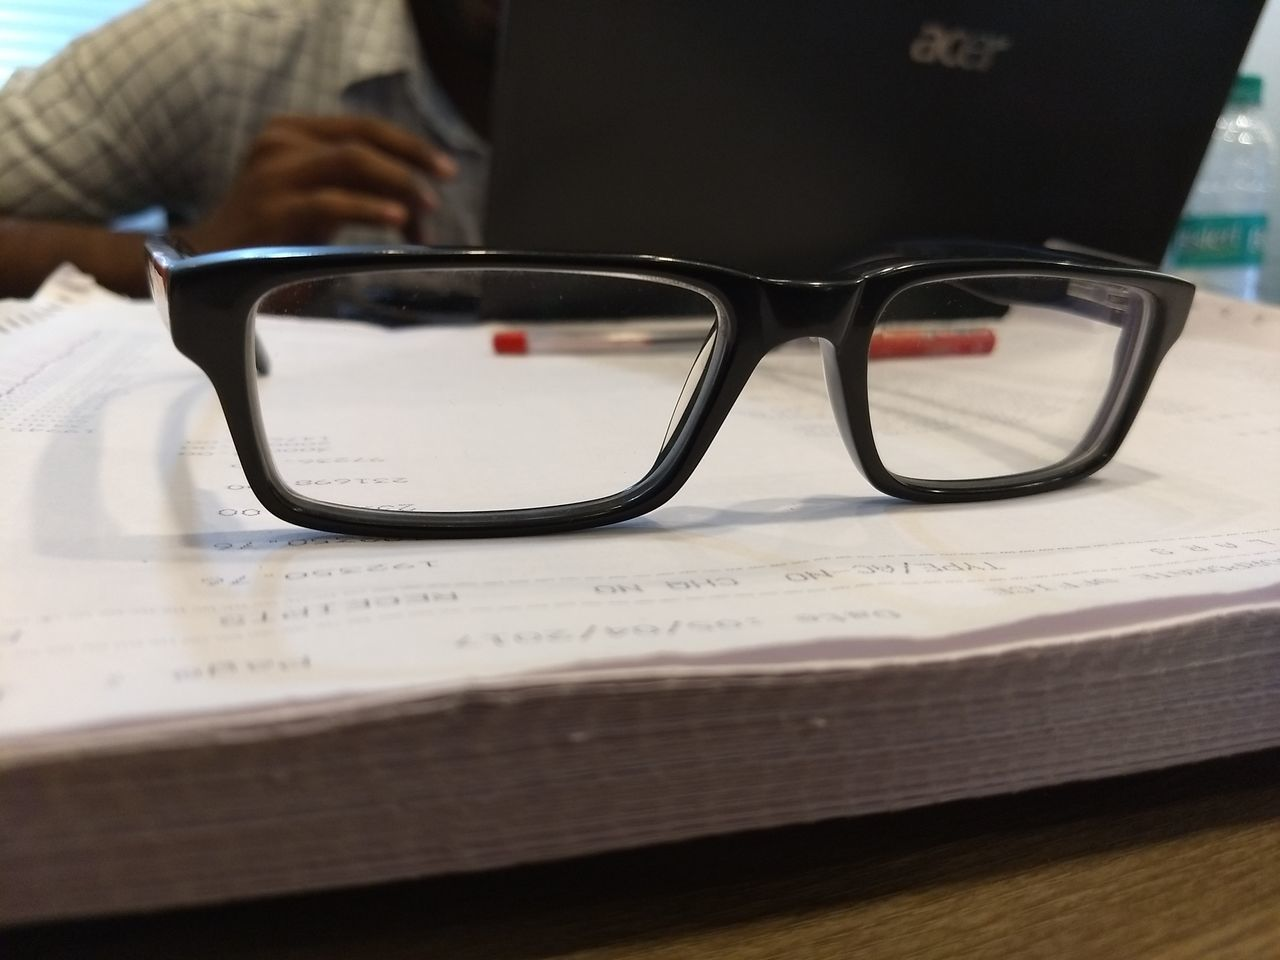 table, indoors, book, sunglasses, one person, eyeglasses, text, education, close-up, real people, day, human body part, human hand